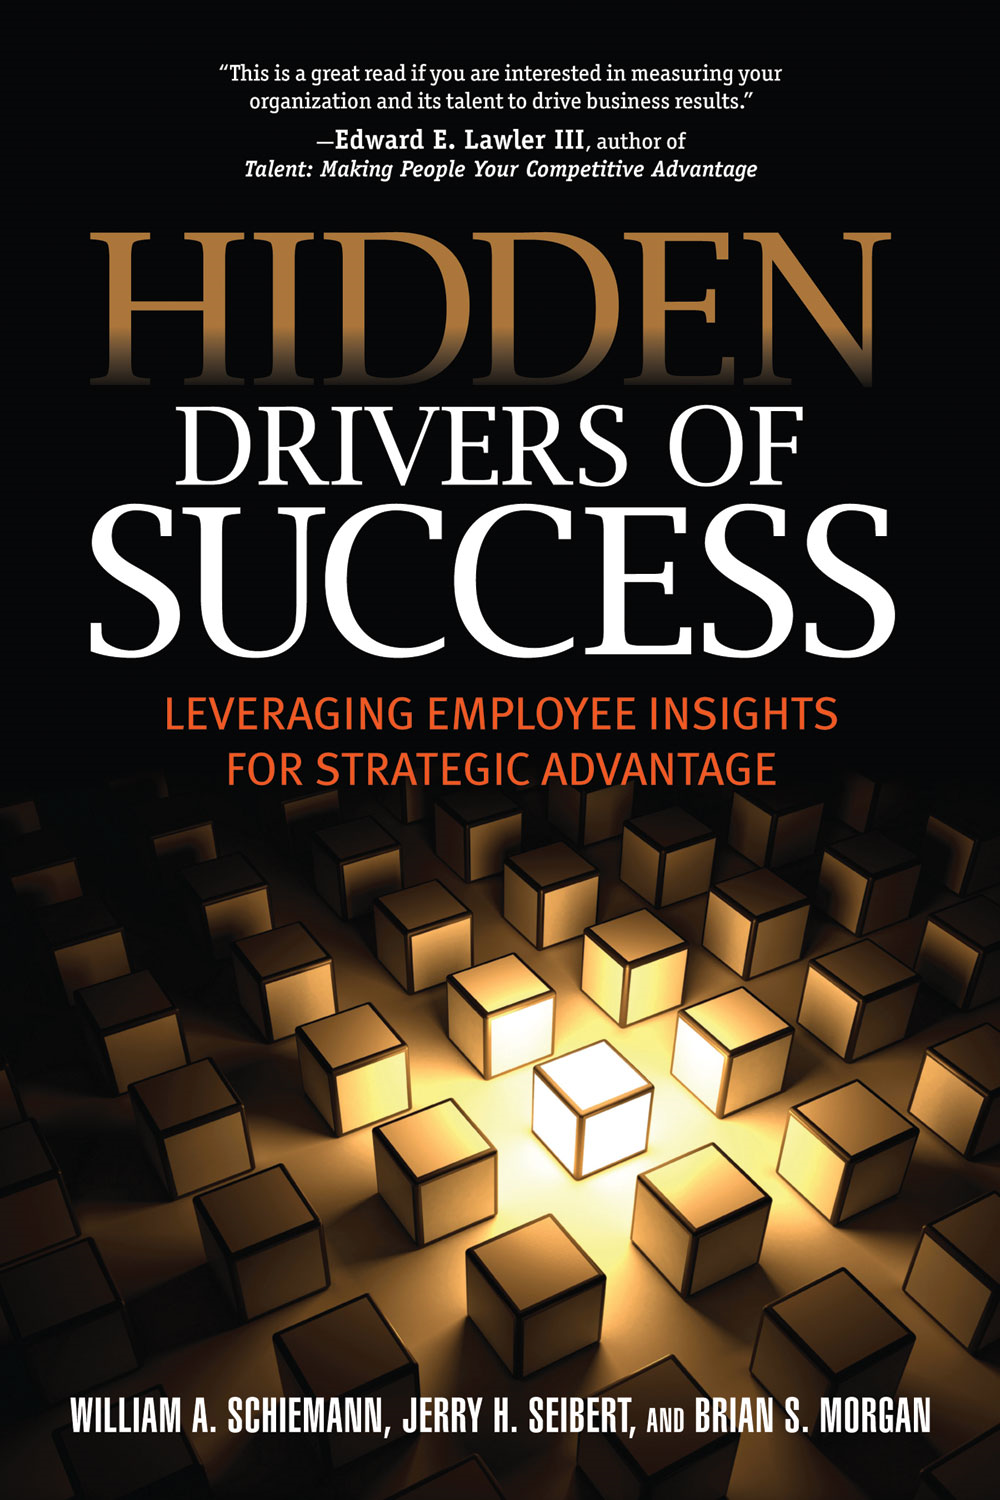 Hidden Drivers of Success